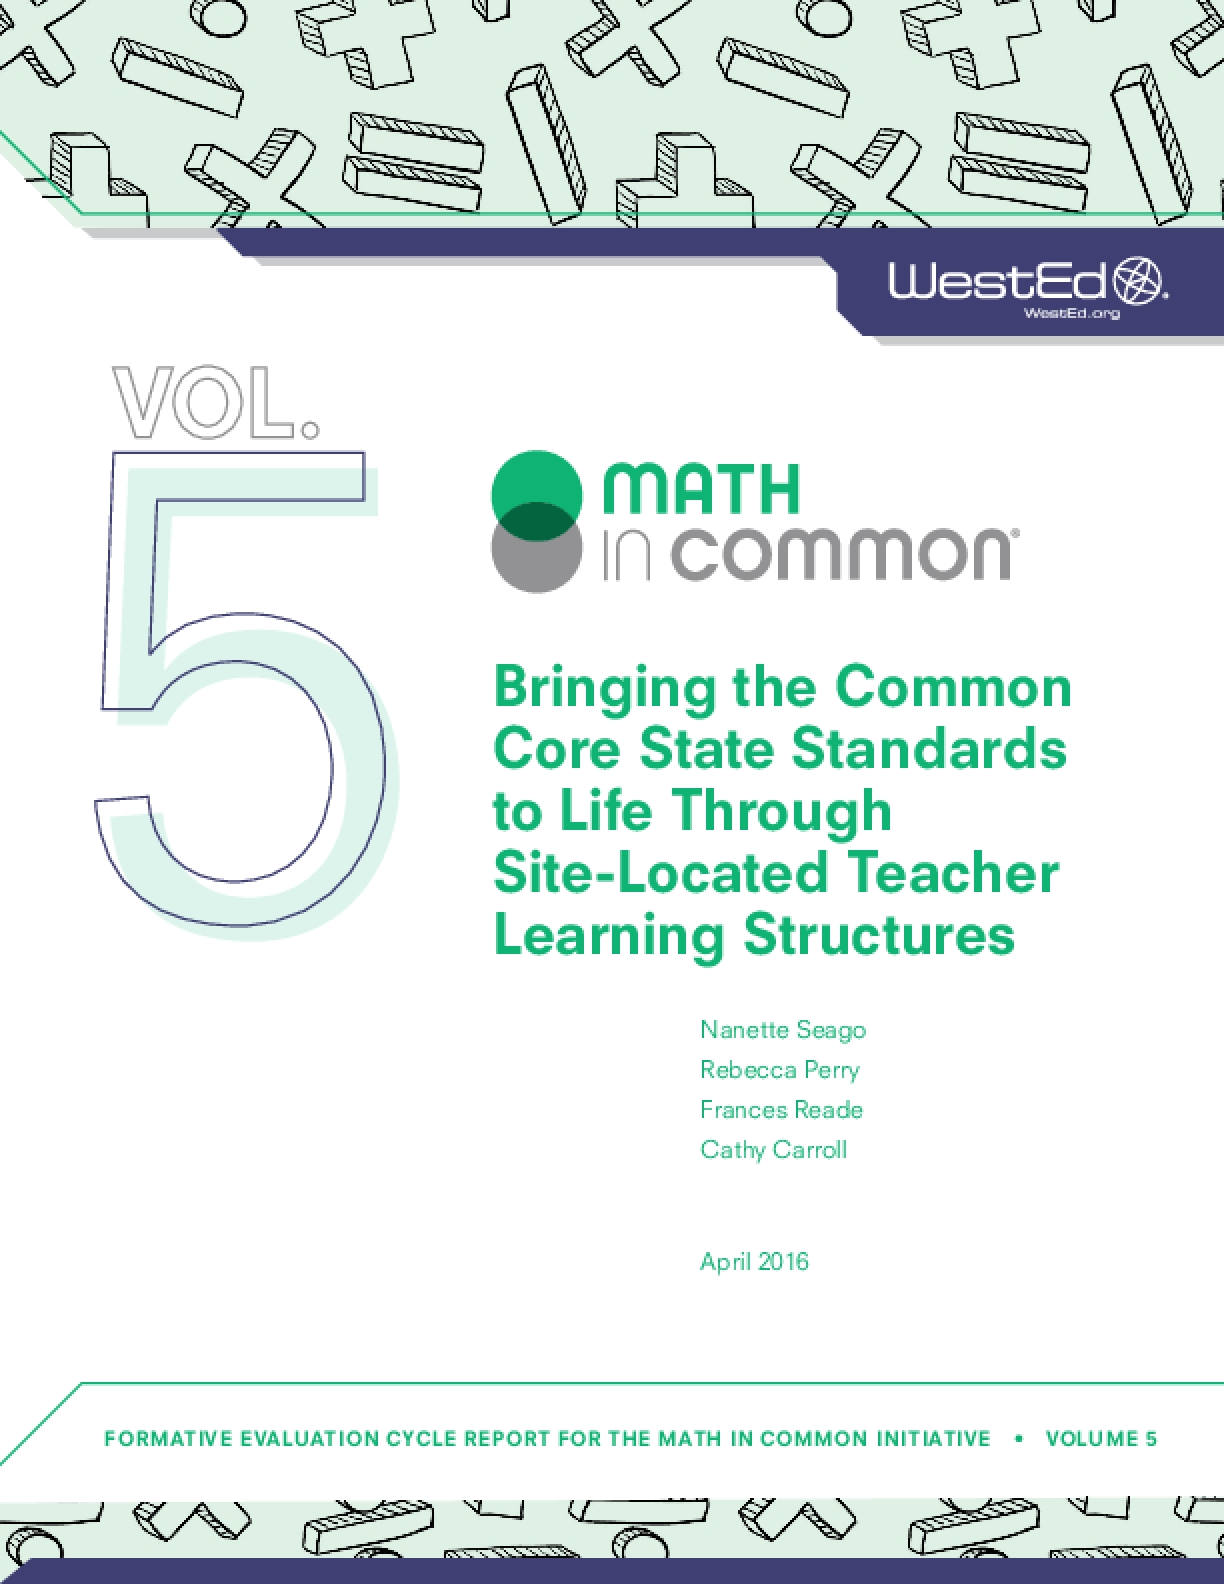 Bringing the Common Core State Standards to Life Through Site-Located Teacher Learning Structures